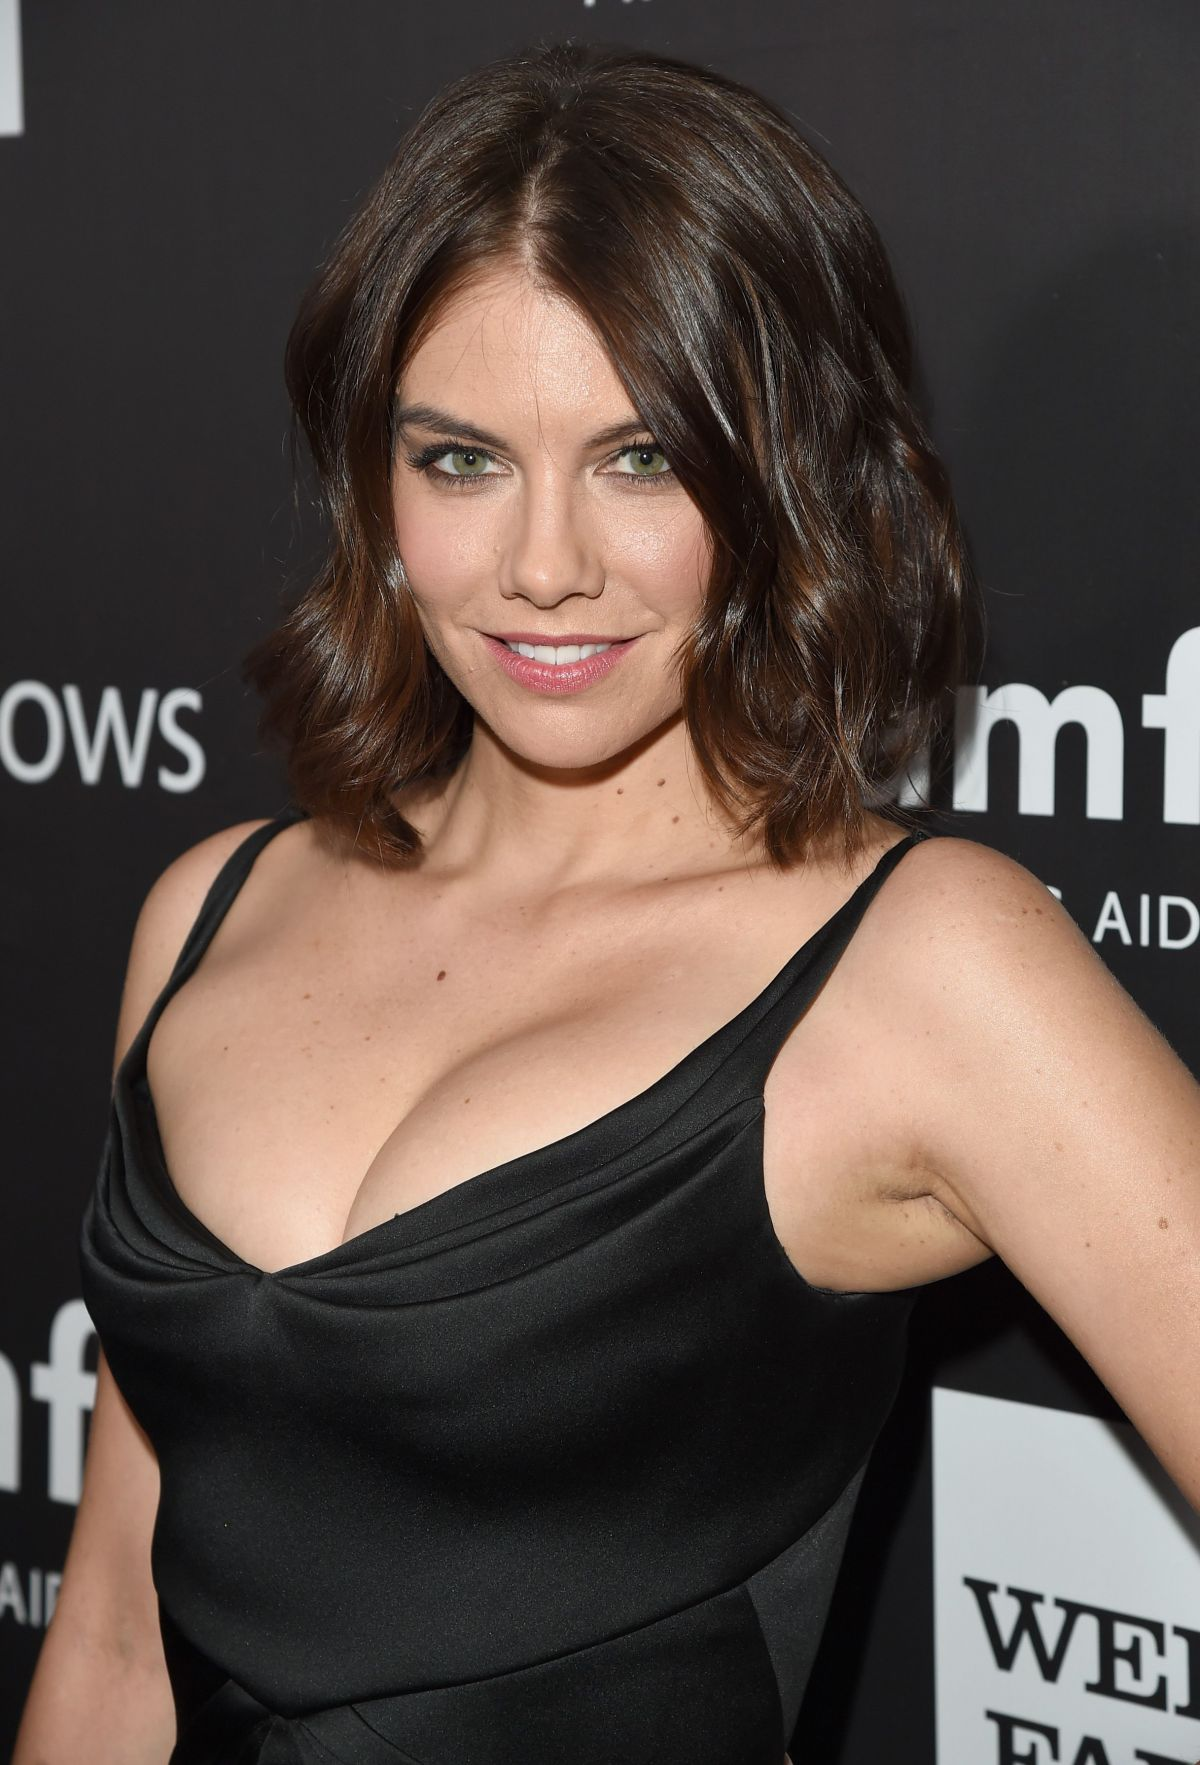 Lauren Cohan earned a  million dollar salary, leaving the net worth at 2 million in 2017